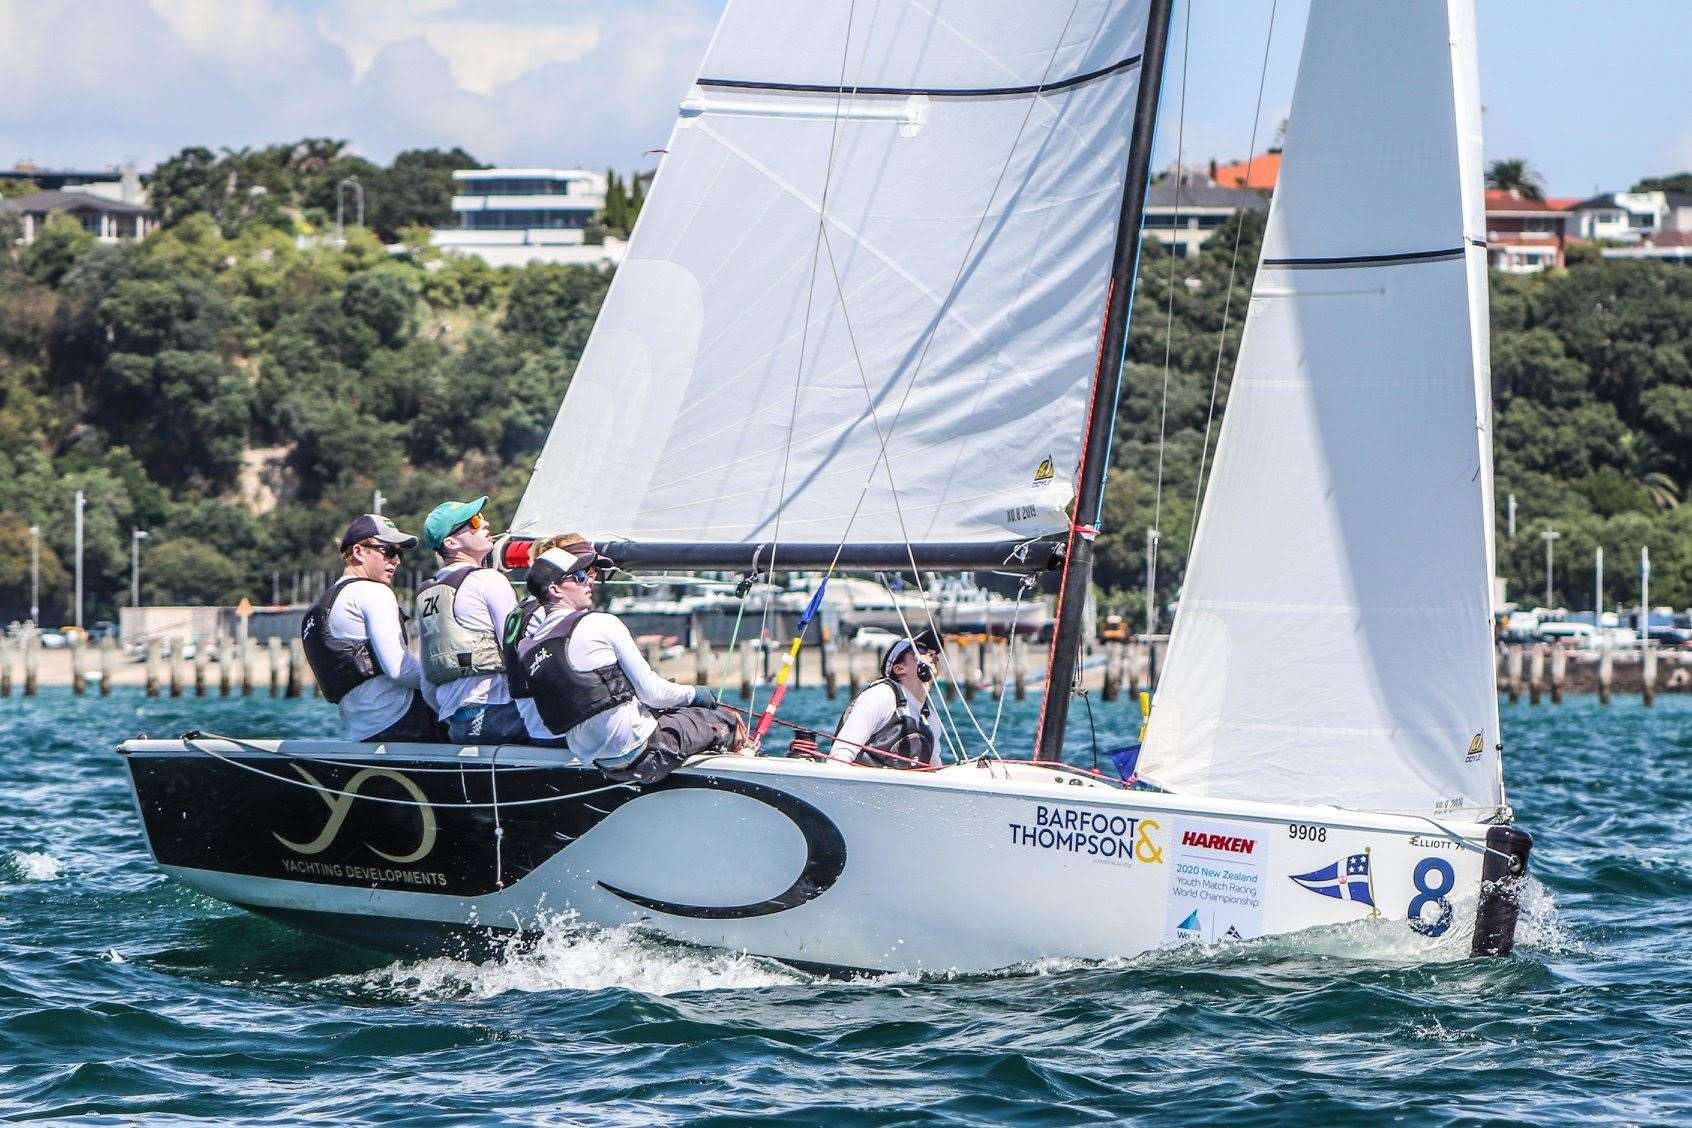 Patrick Bray and his Absolute match racing team on the water in New ZealandPicture: Andrew Delves (33492007)